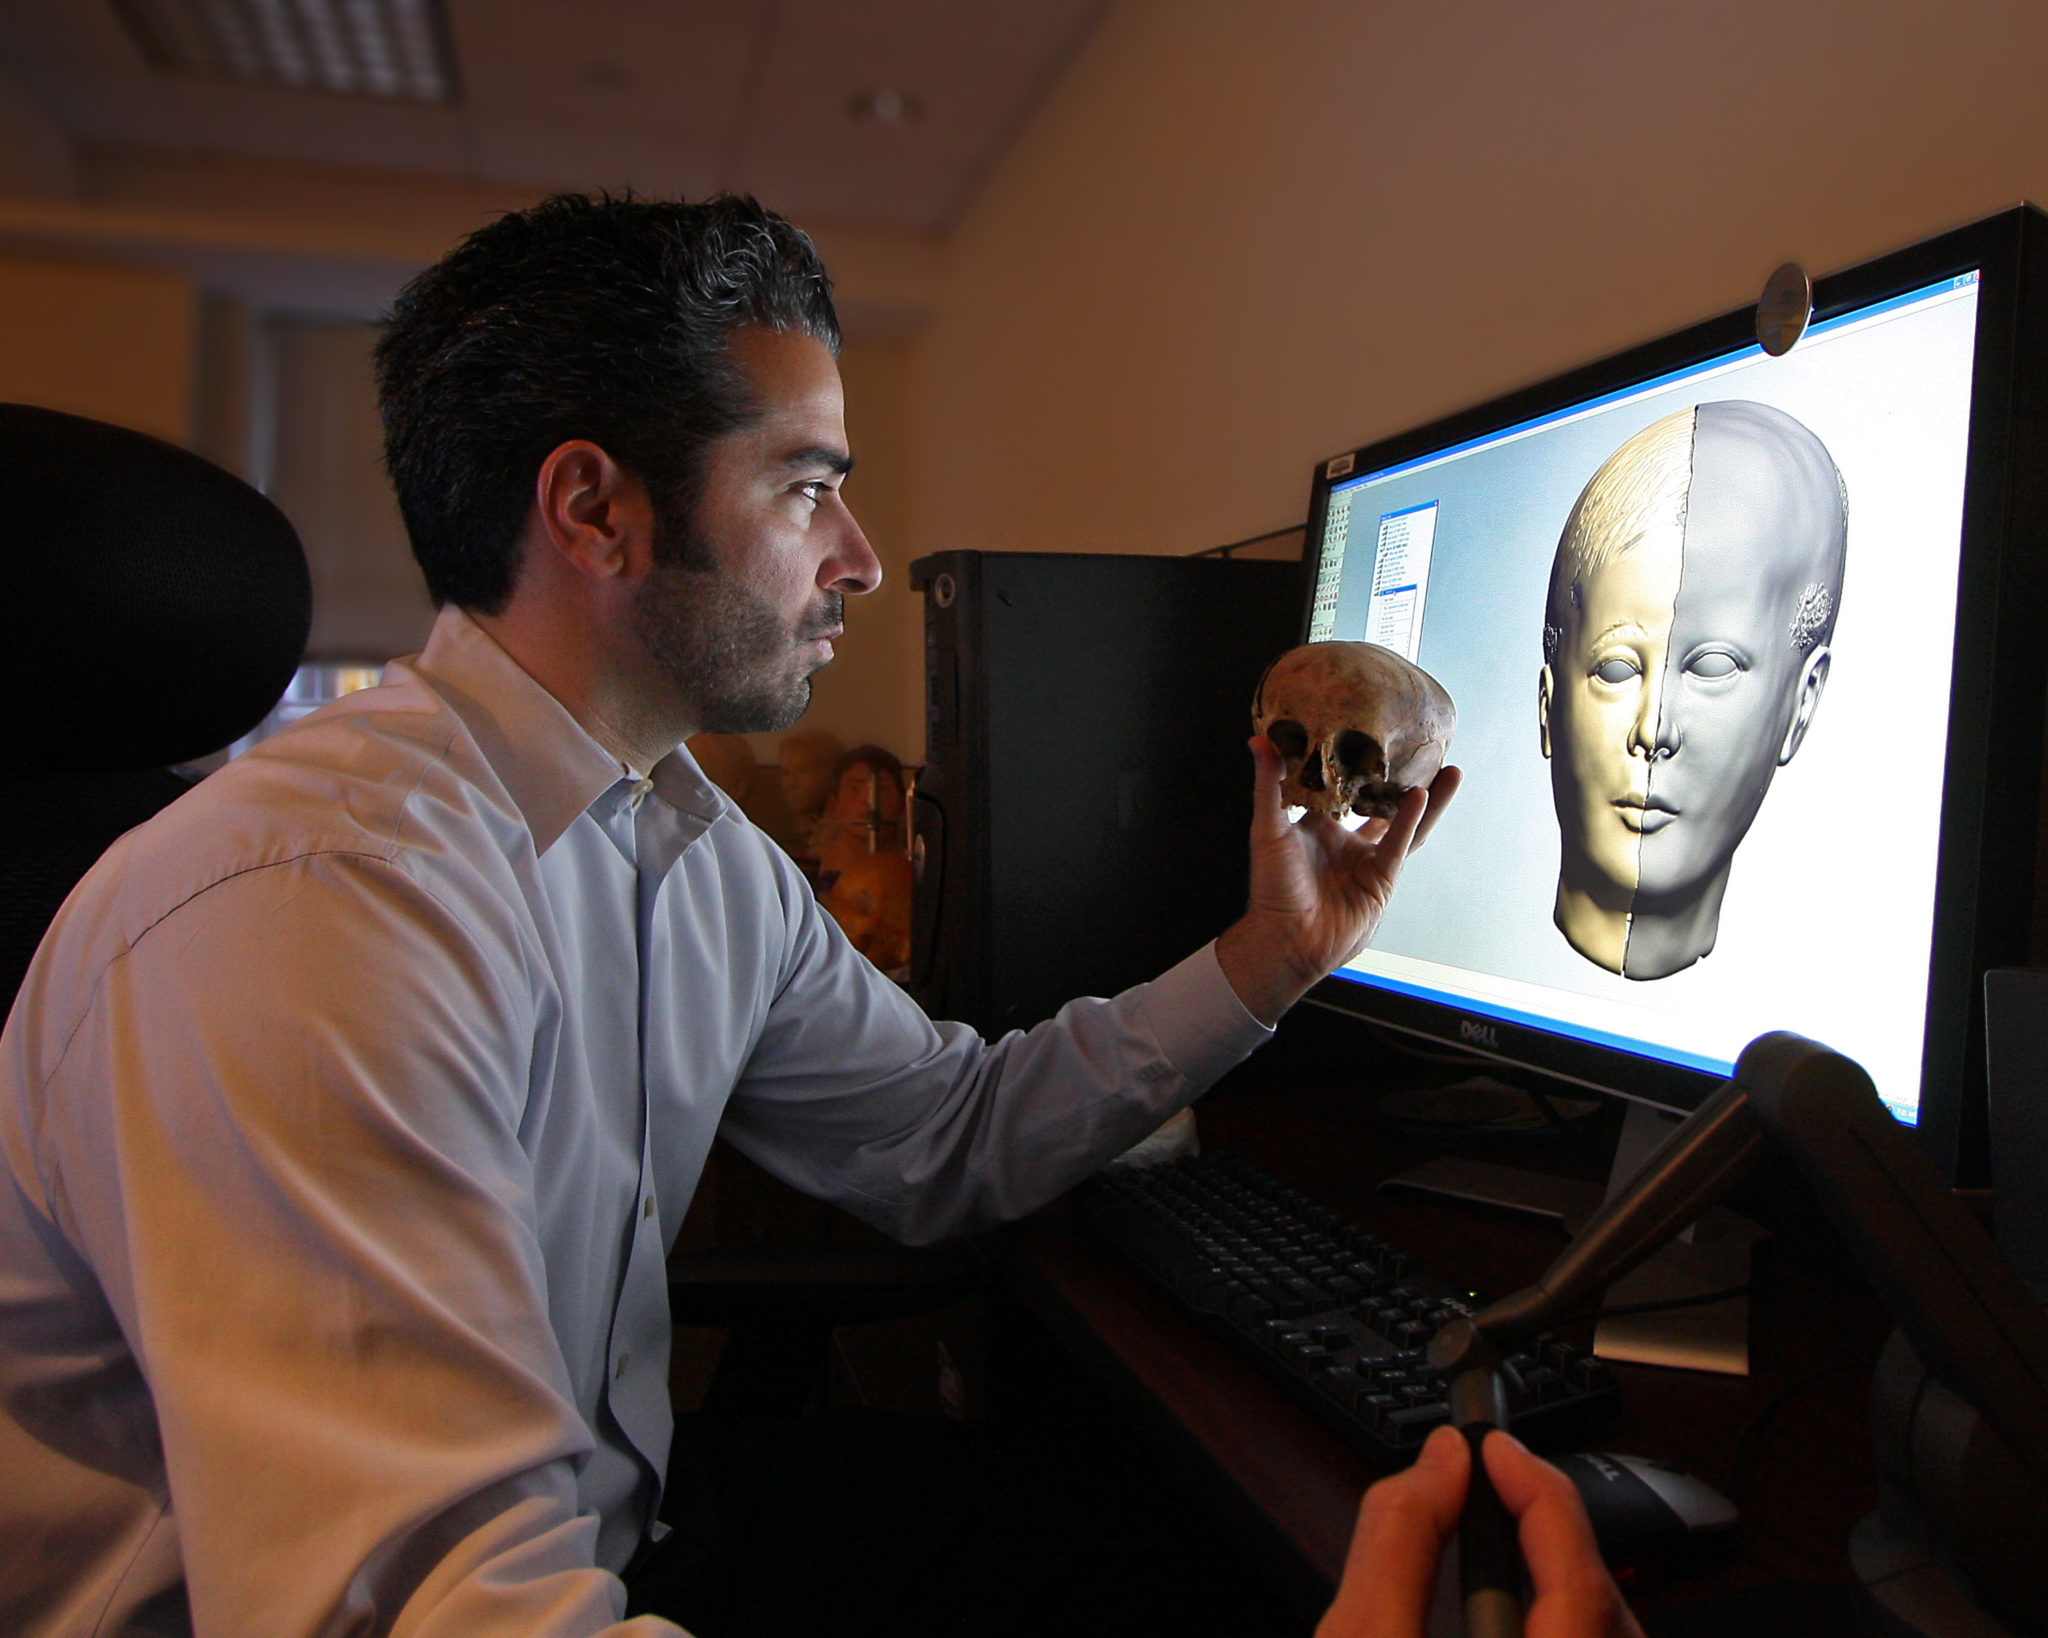 Forensic artist Joe Mullins works on a facial reconstruction from a partial skull. Photo credit: Robert Bird, courtesy, NCMEC